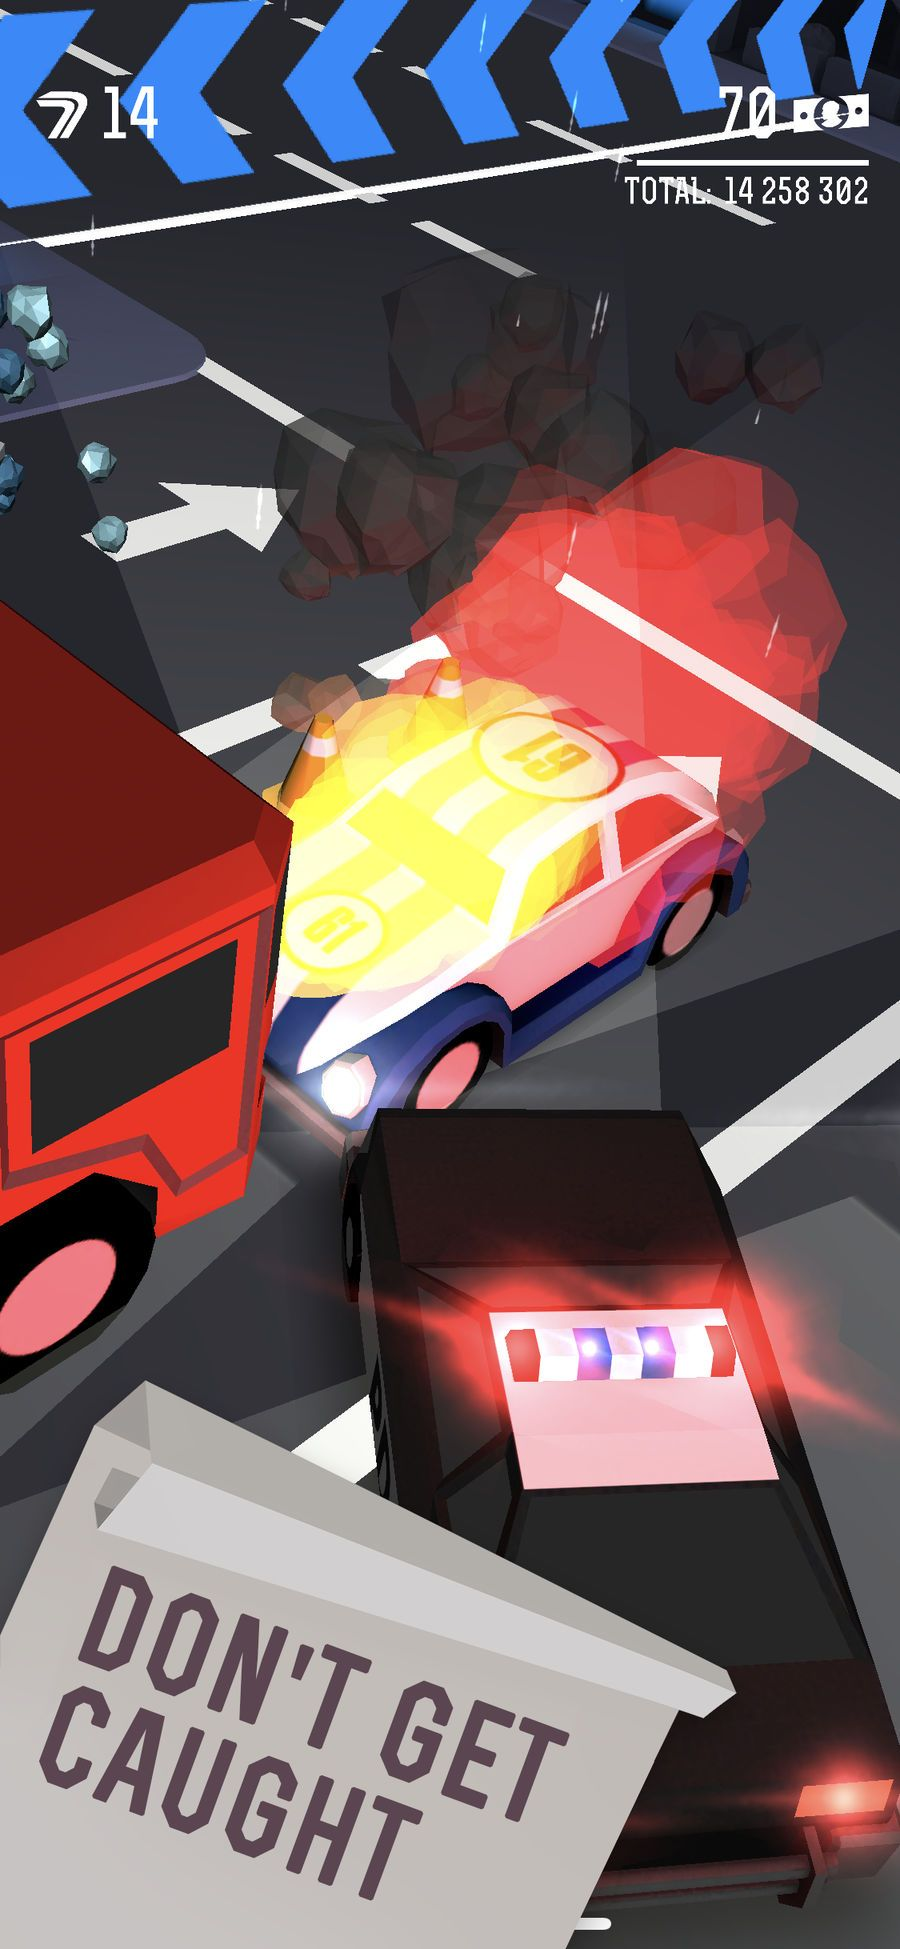 Drifty Chase ArcadeRacingappsios Ios apps, Chase, Arcade